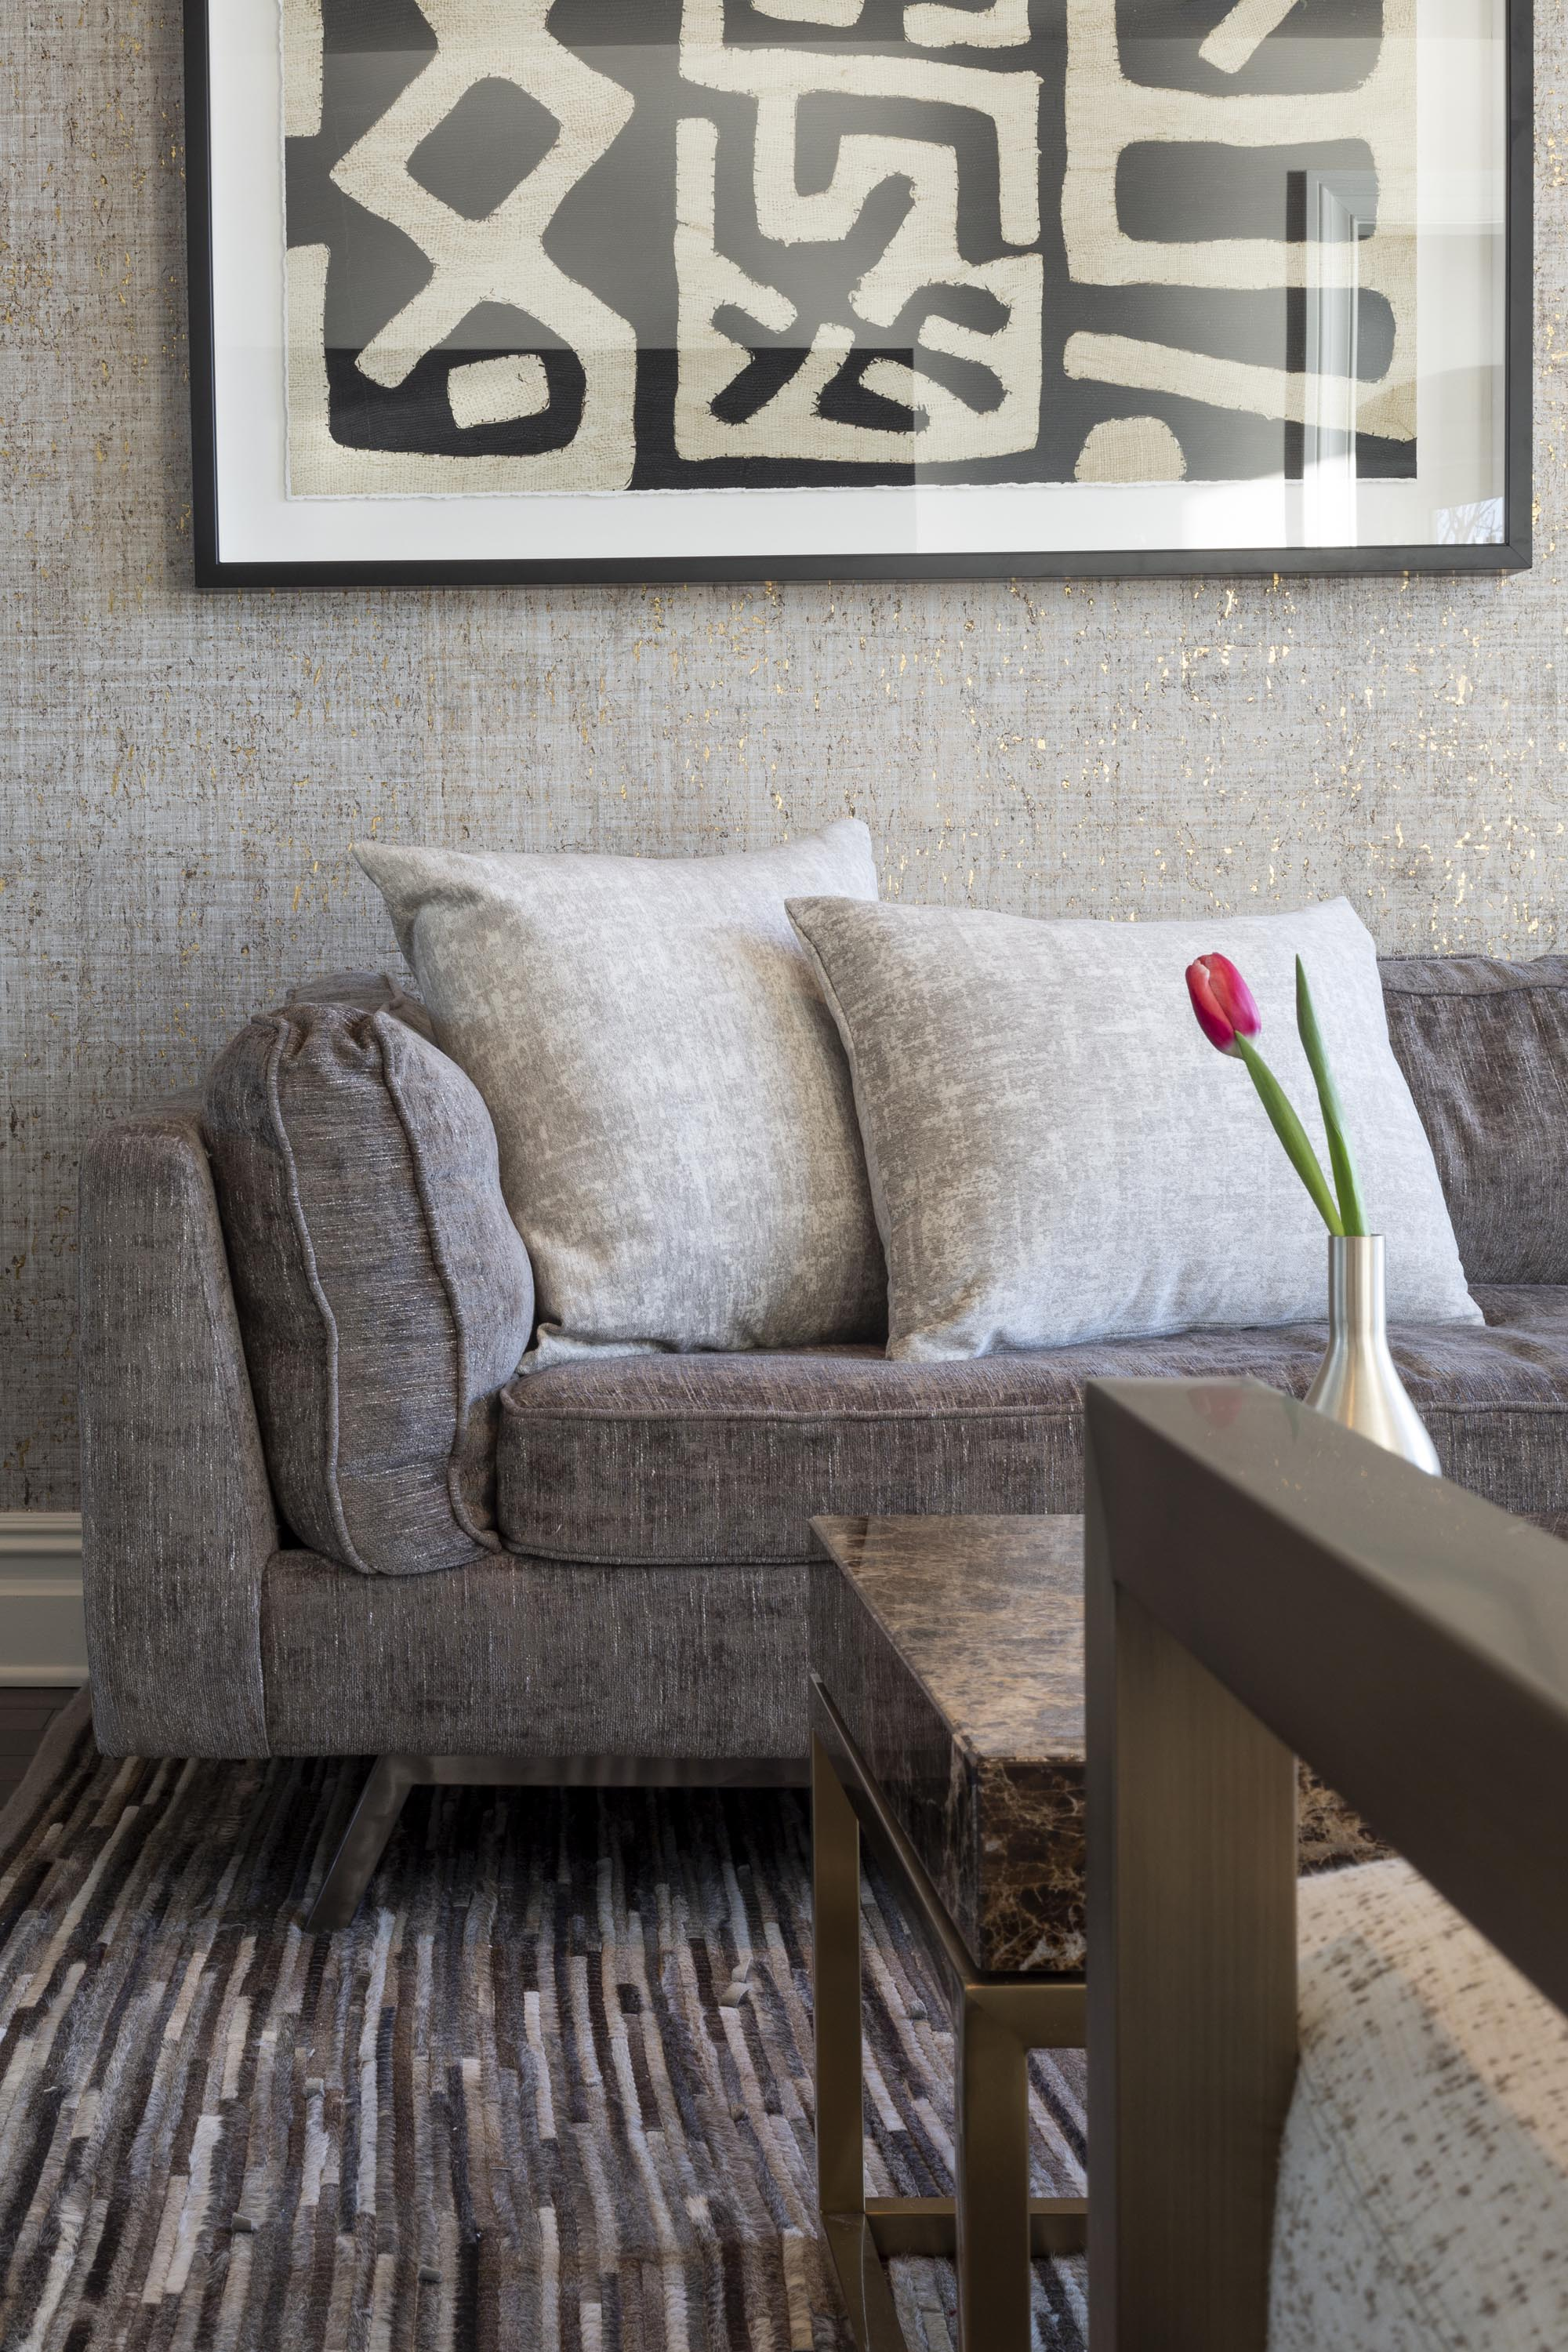 Living room with modern wallpaper, sofa and pillows